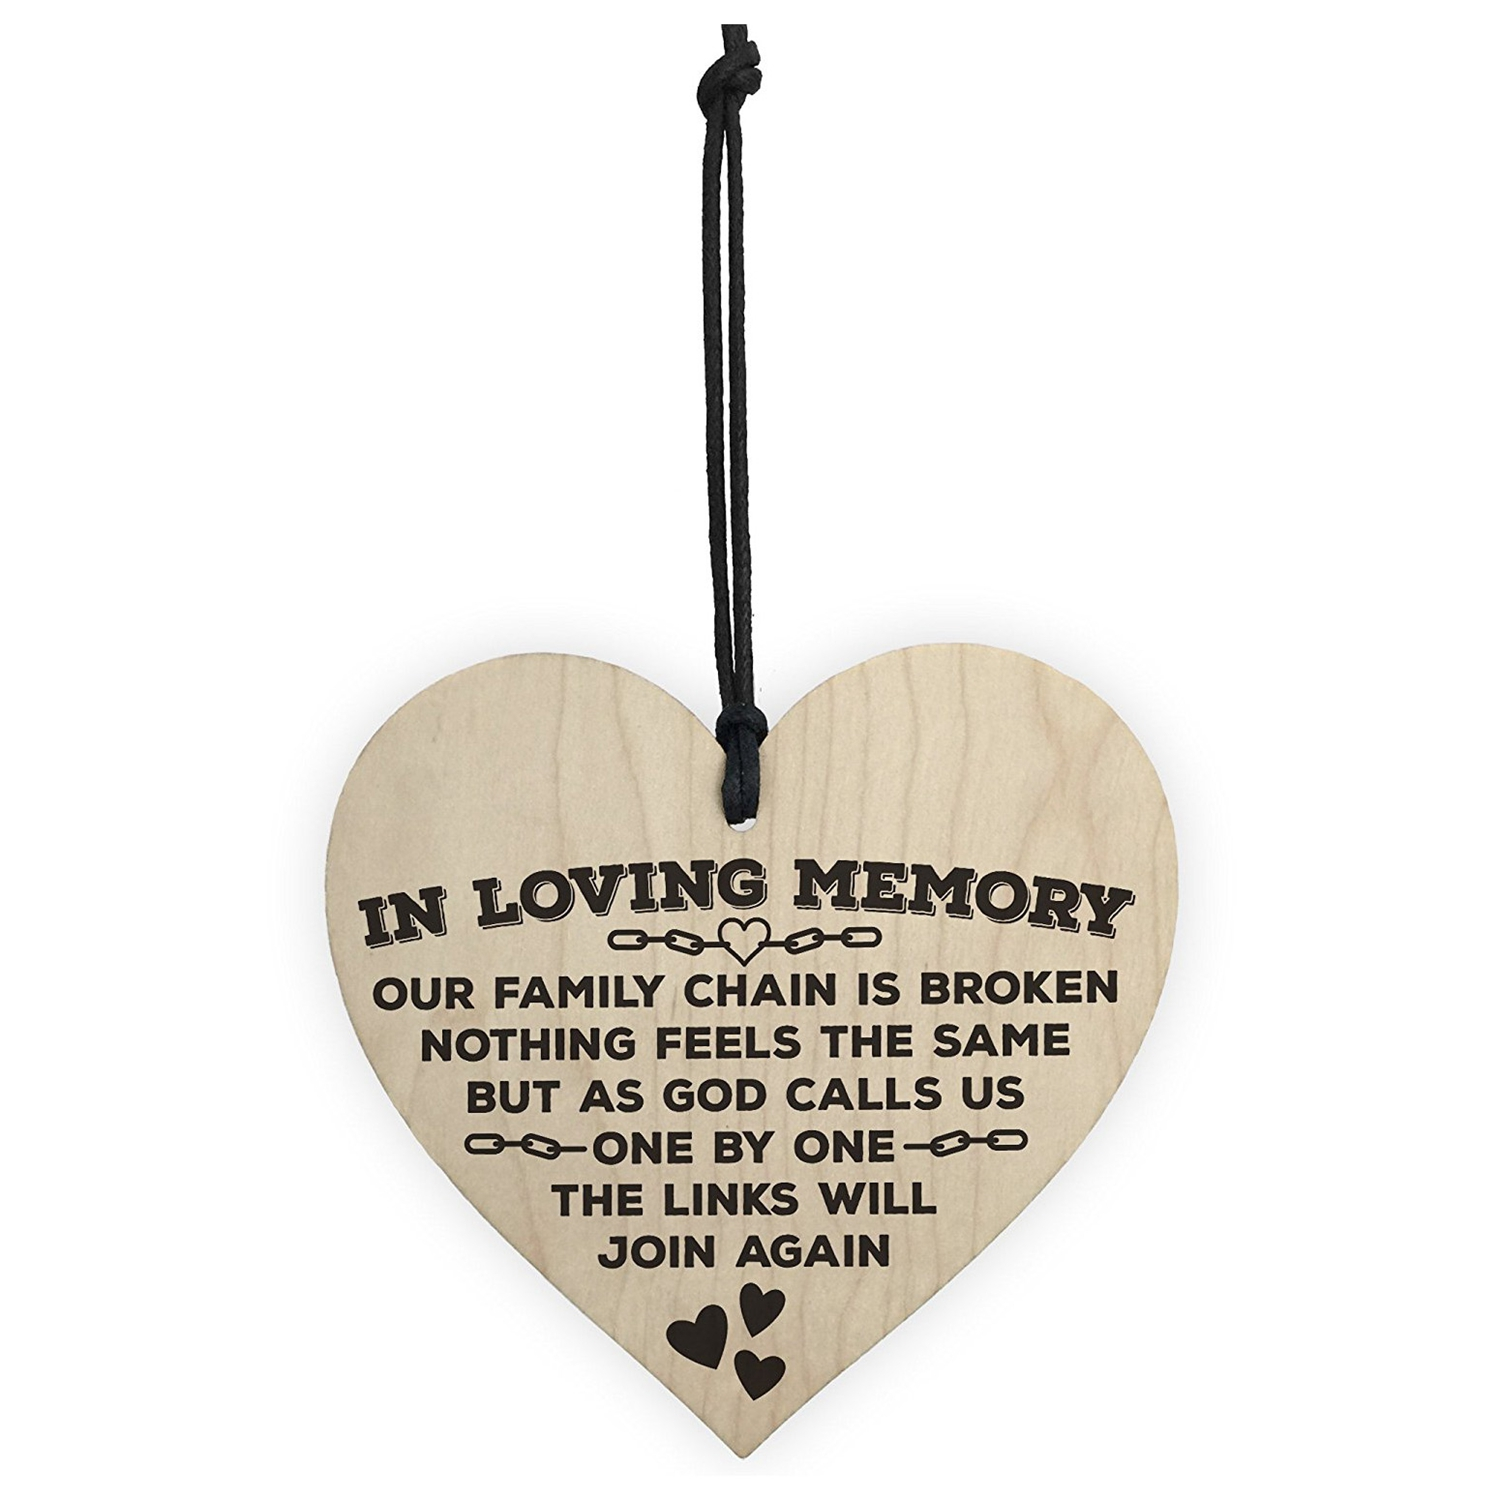 US $0 97 19% OFF In Loving Memory Of Family Wooden Hanging Heart Memorial  Plaque Love Heaven Sign black-in Plaques & Signs from Home & Garden on